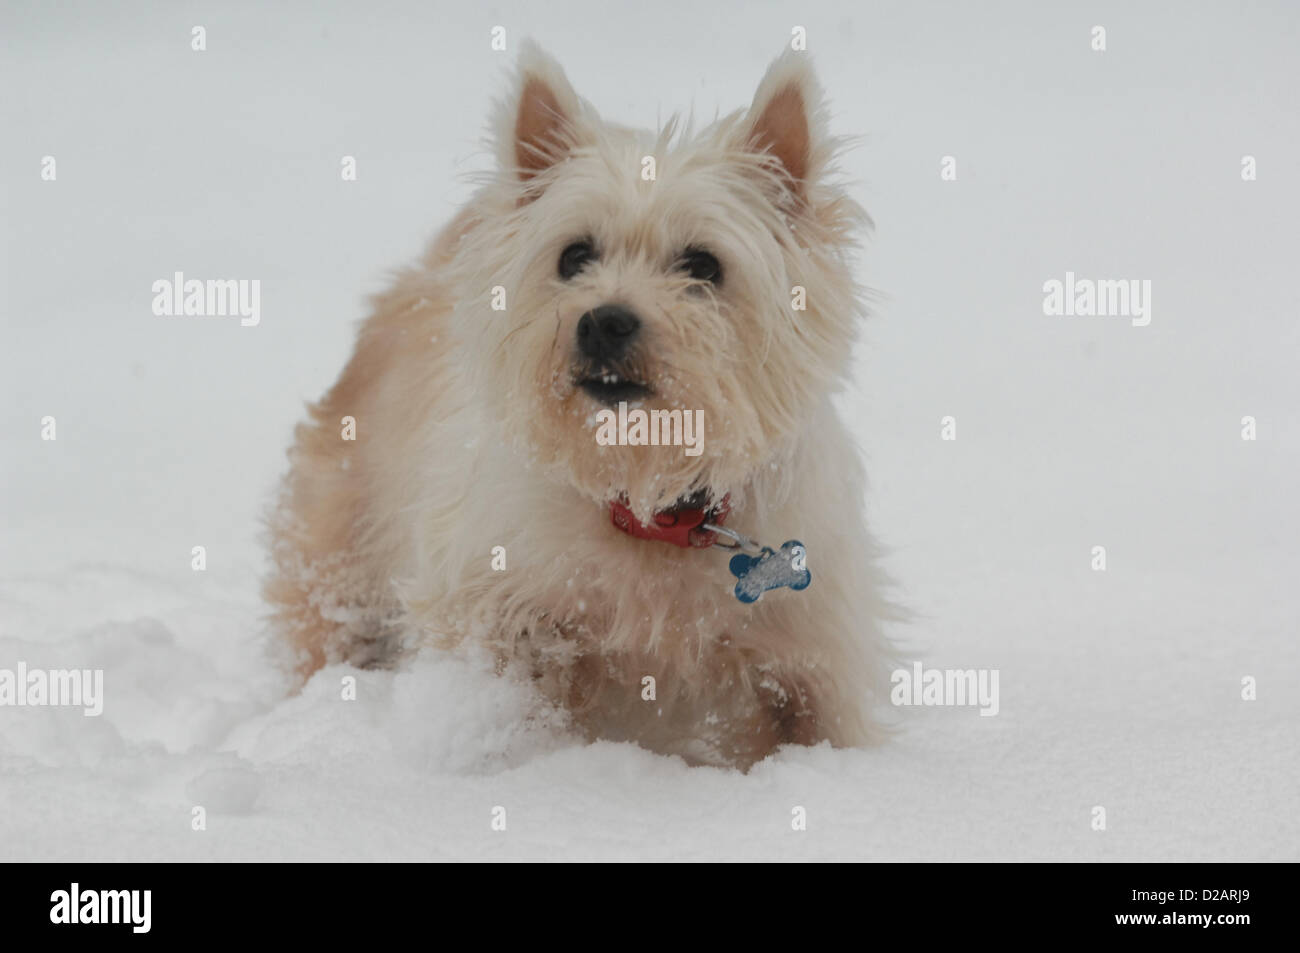 18th January 2012. A West Highland Terrier enjoys herself in the snow in the park in Hereford. Mark Andrews/Alamy - Stock Image